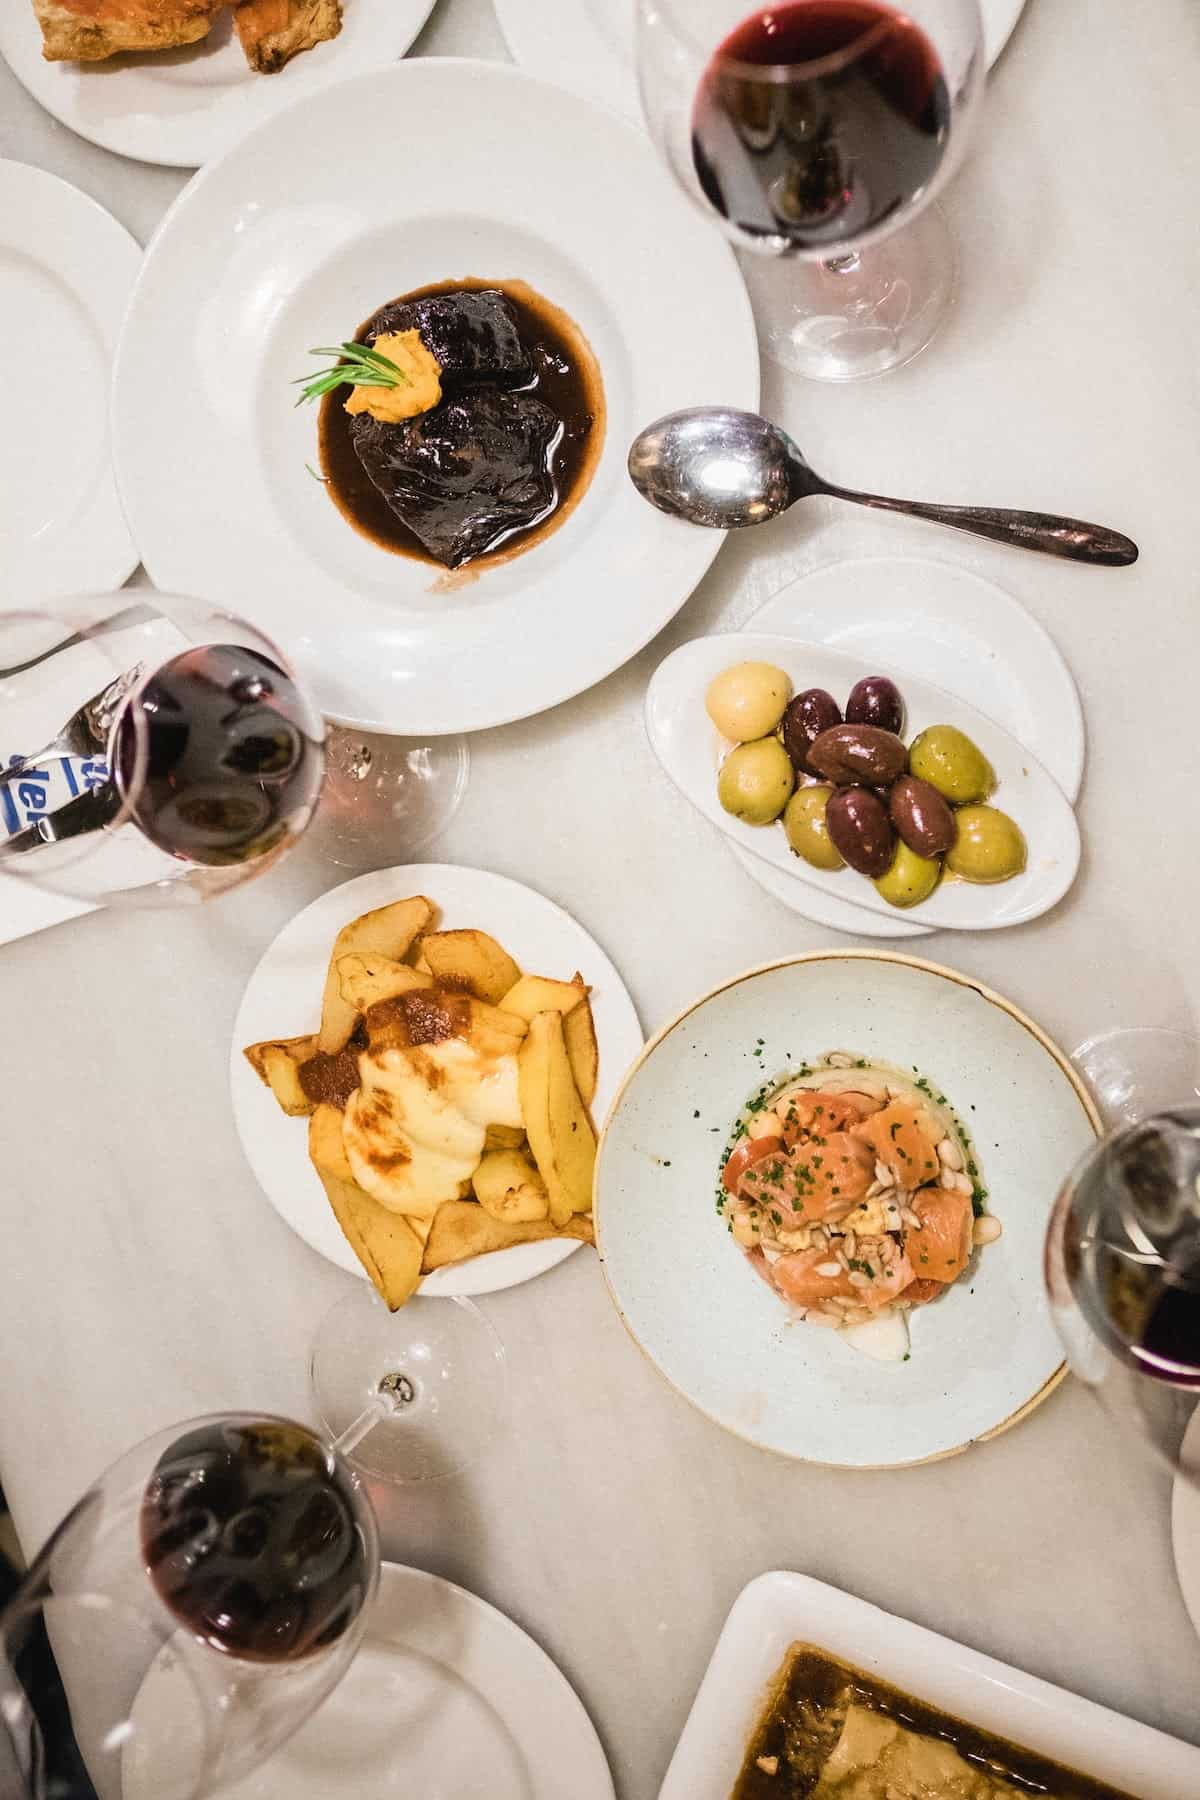 Overhead shot of Spanish tapas and glasses of red wine on a white table